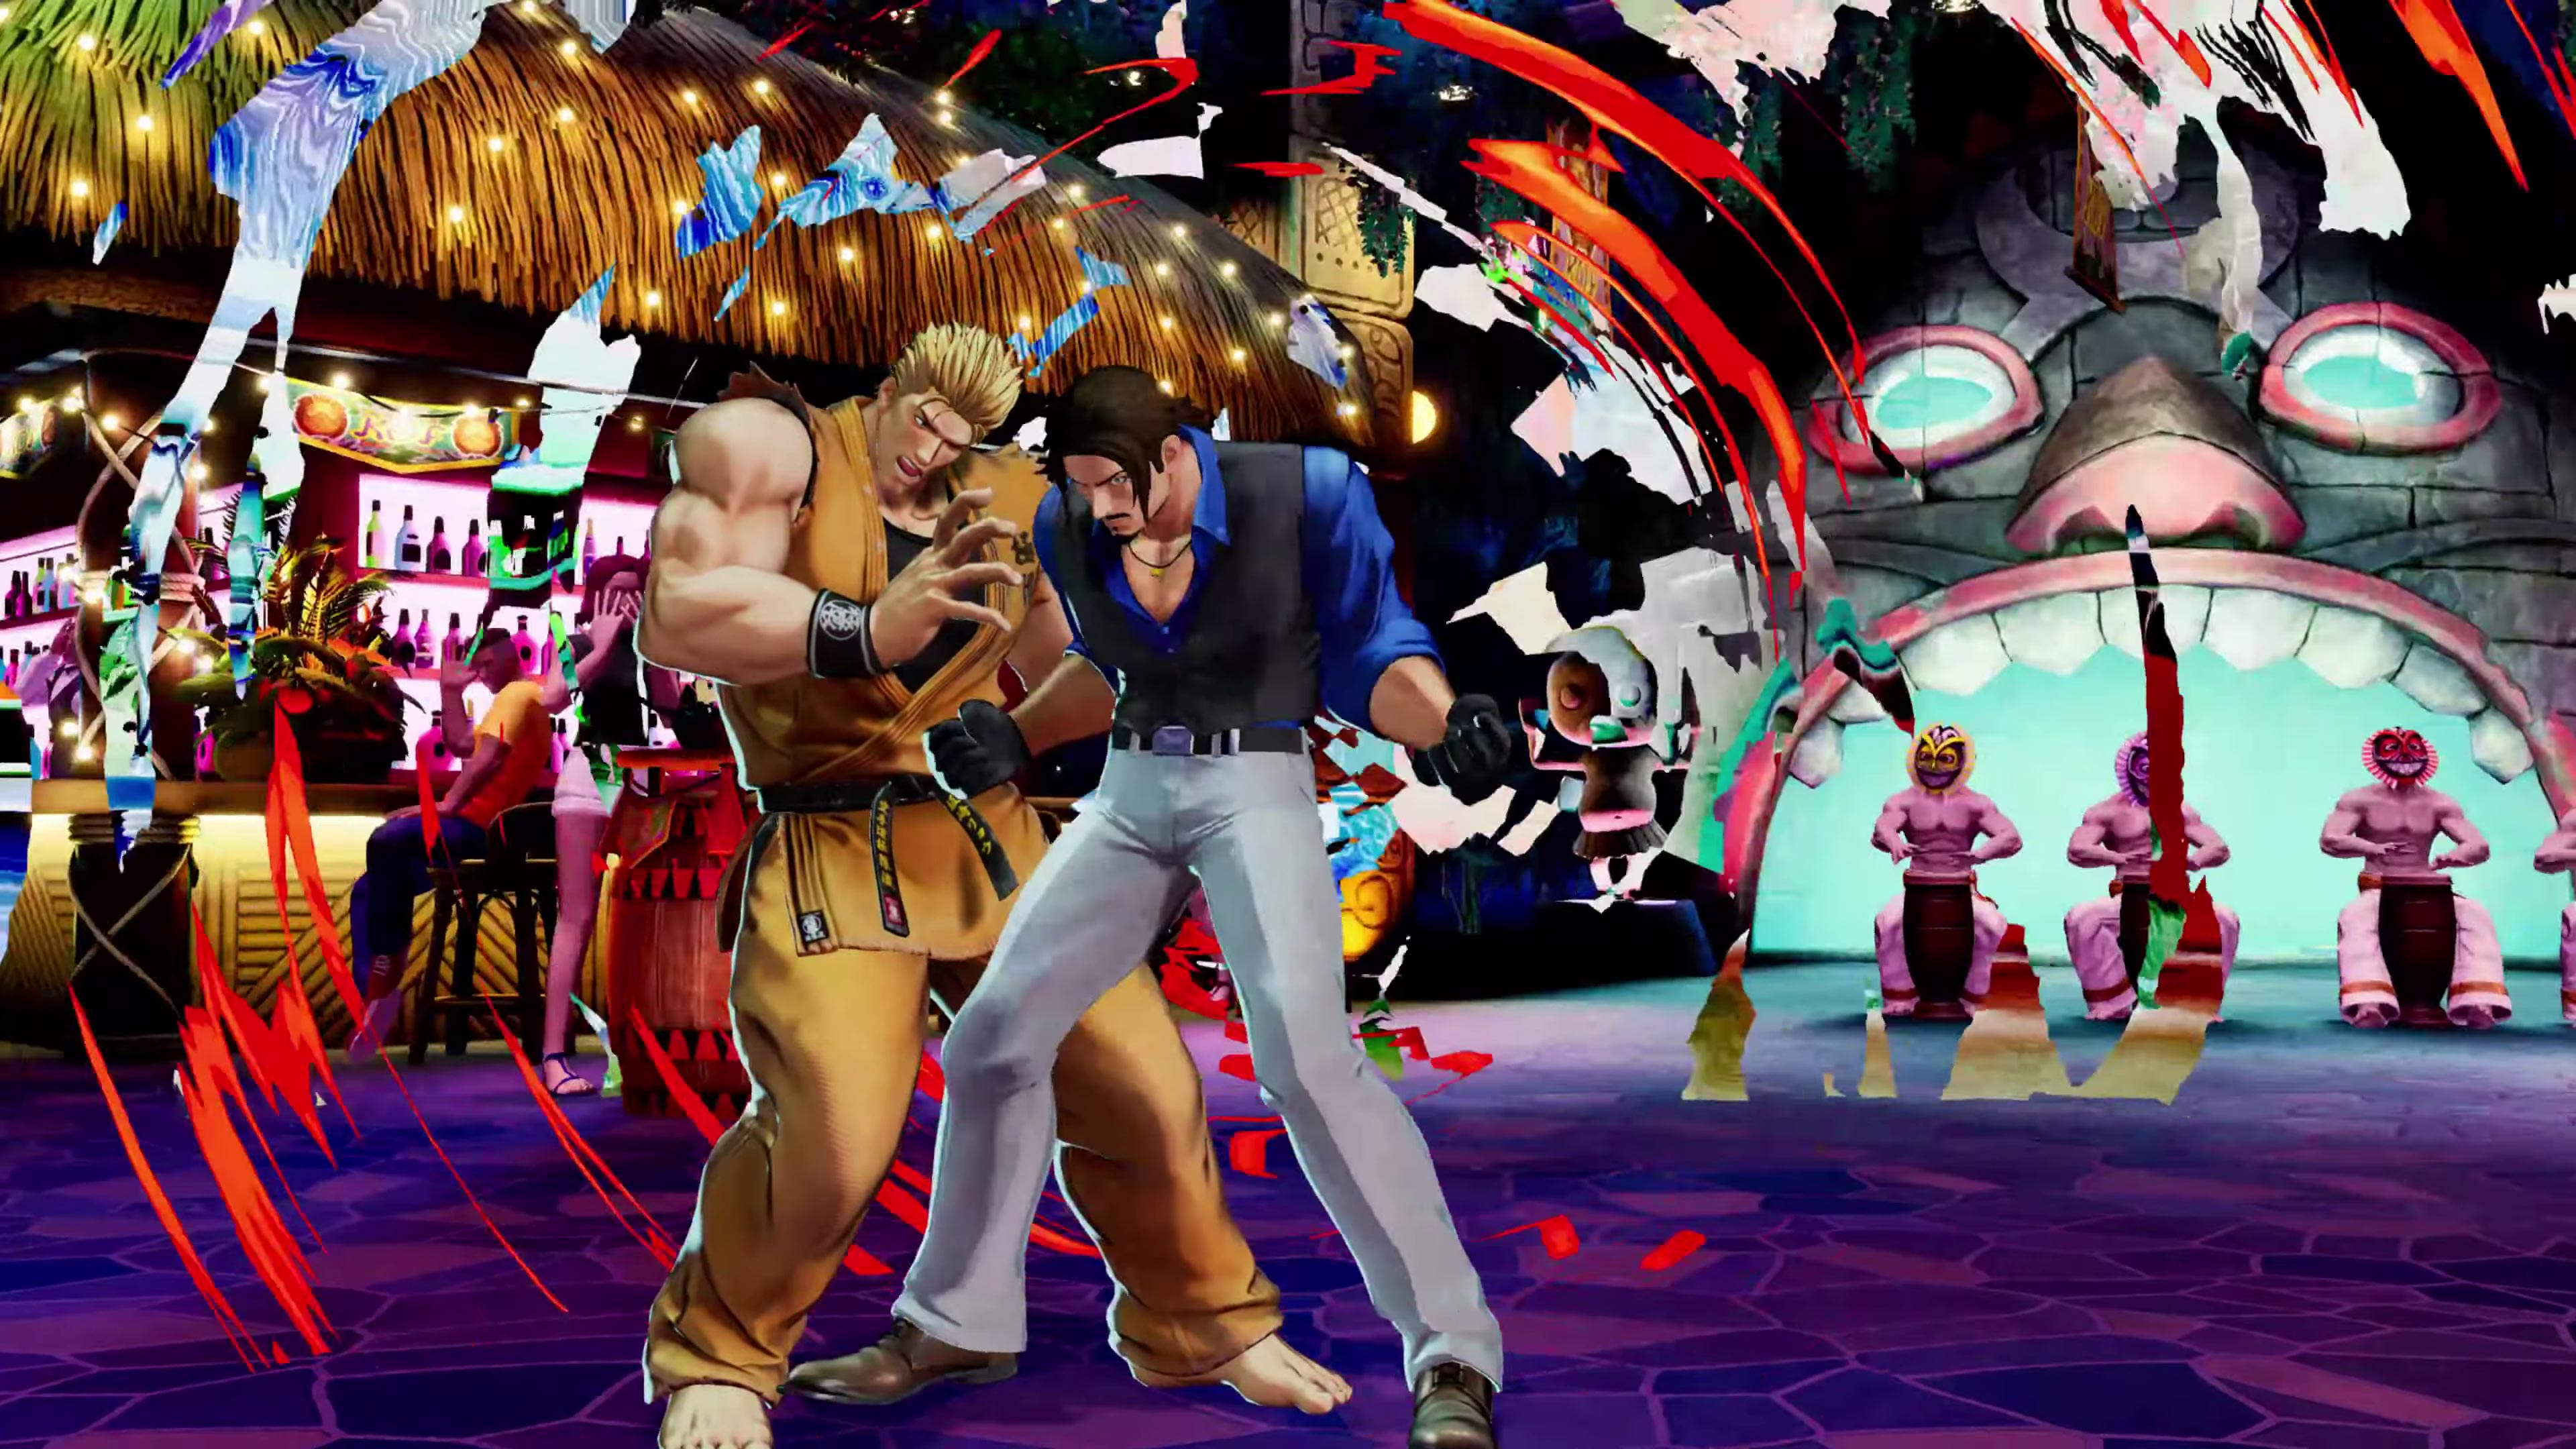 Robert and Ryo KOF15 reveal 9 out of 9 image gallery